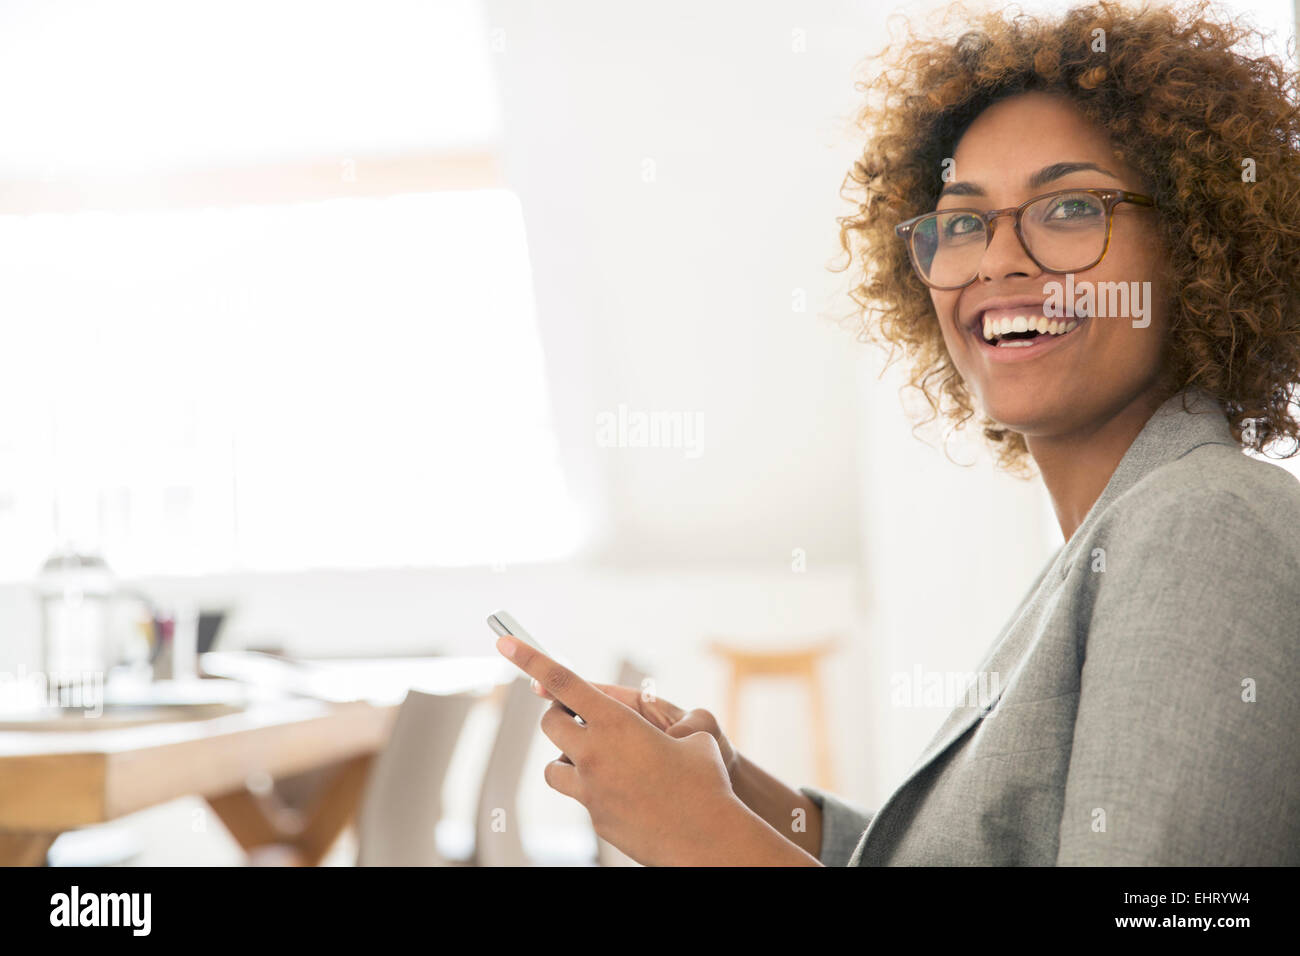 Portrait of smiling office worker with smart phone - Stock Image